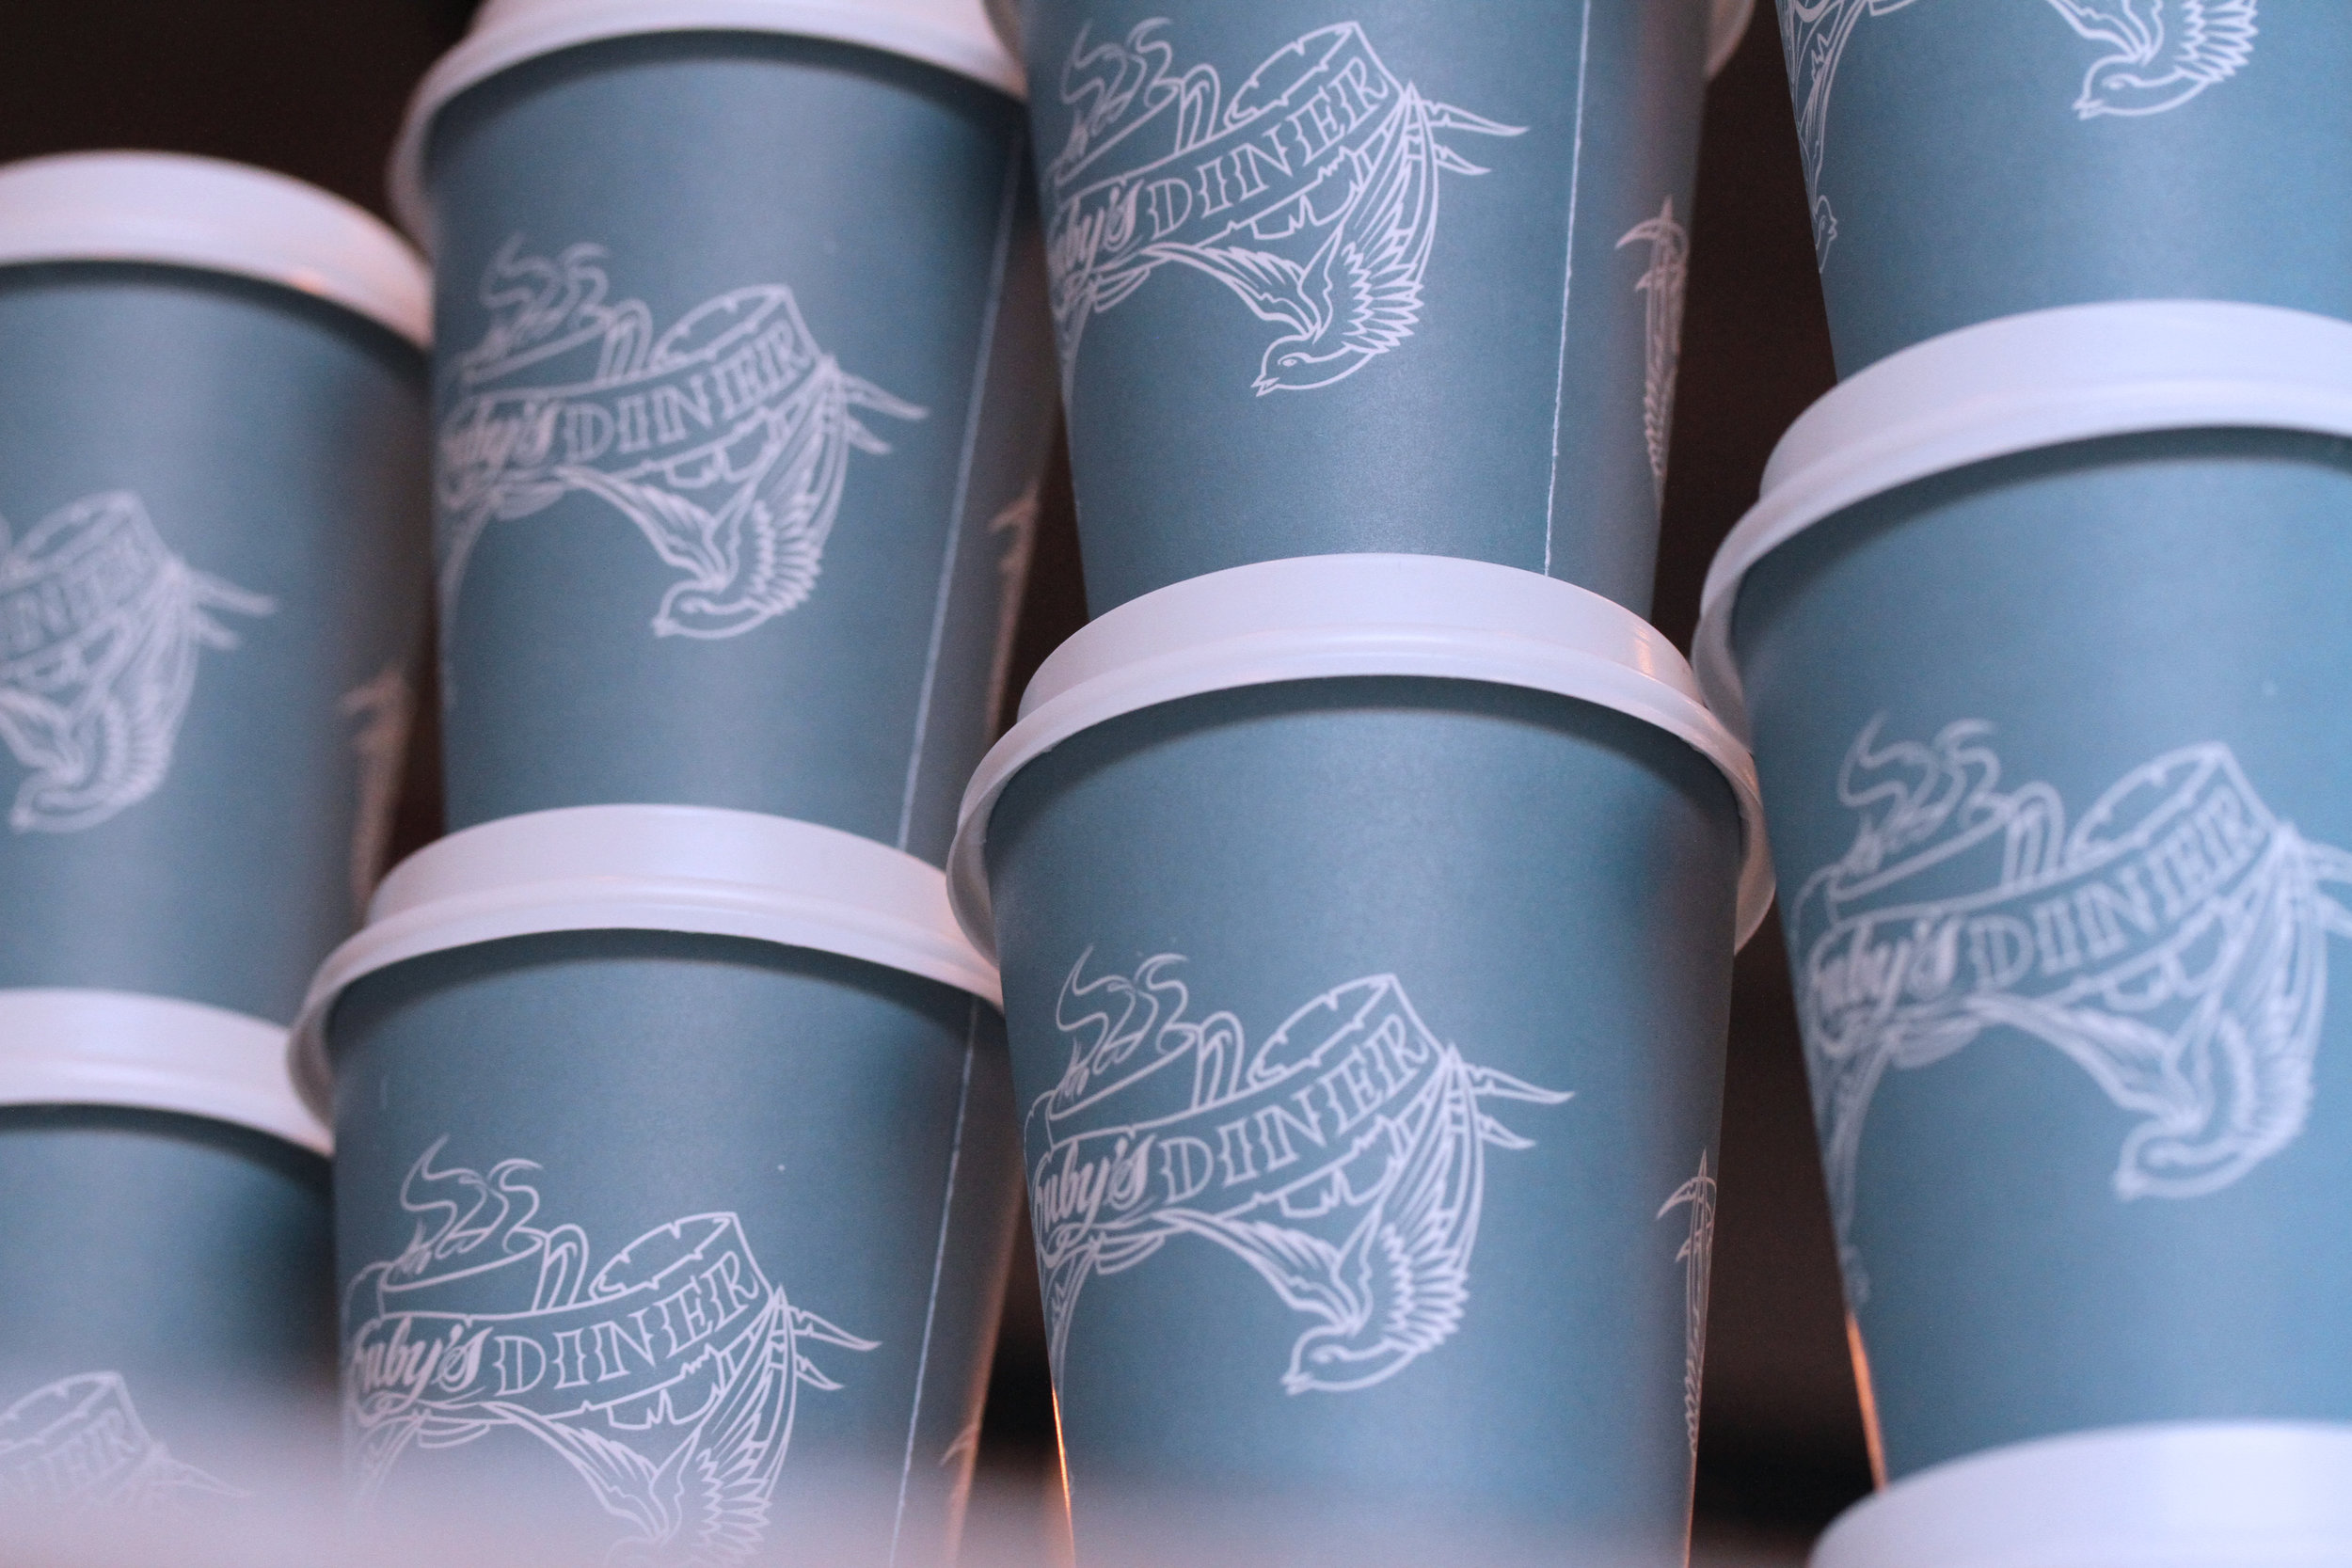 Takeaway Coffee - Take your coffee to go in our signature blue cup or bring your own reusable cup and save 20c